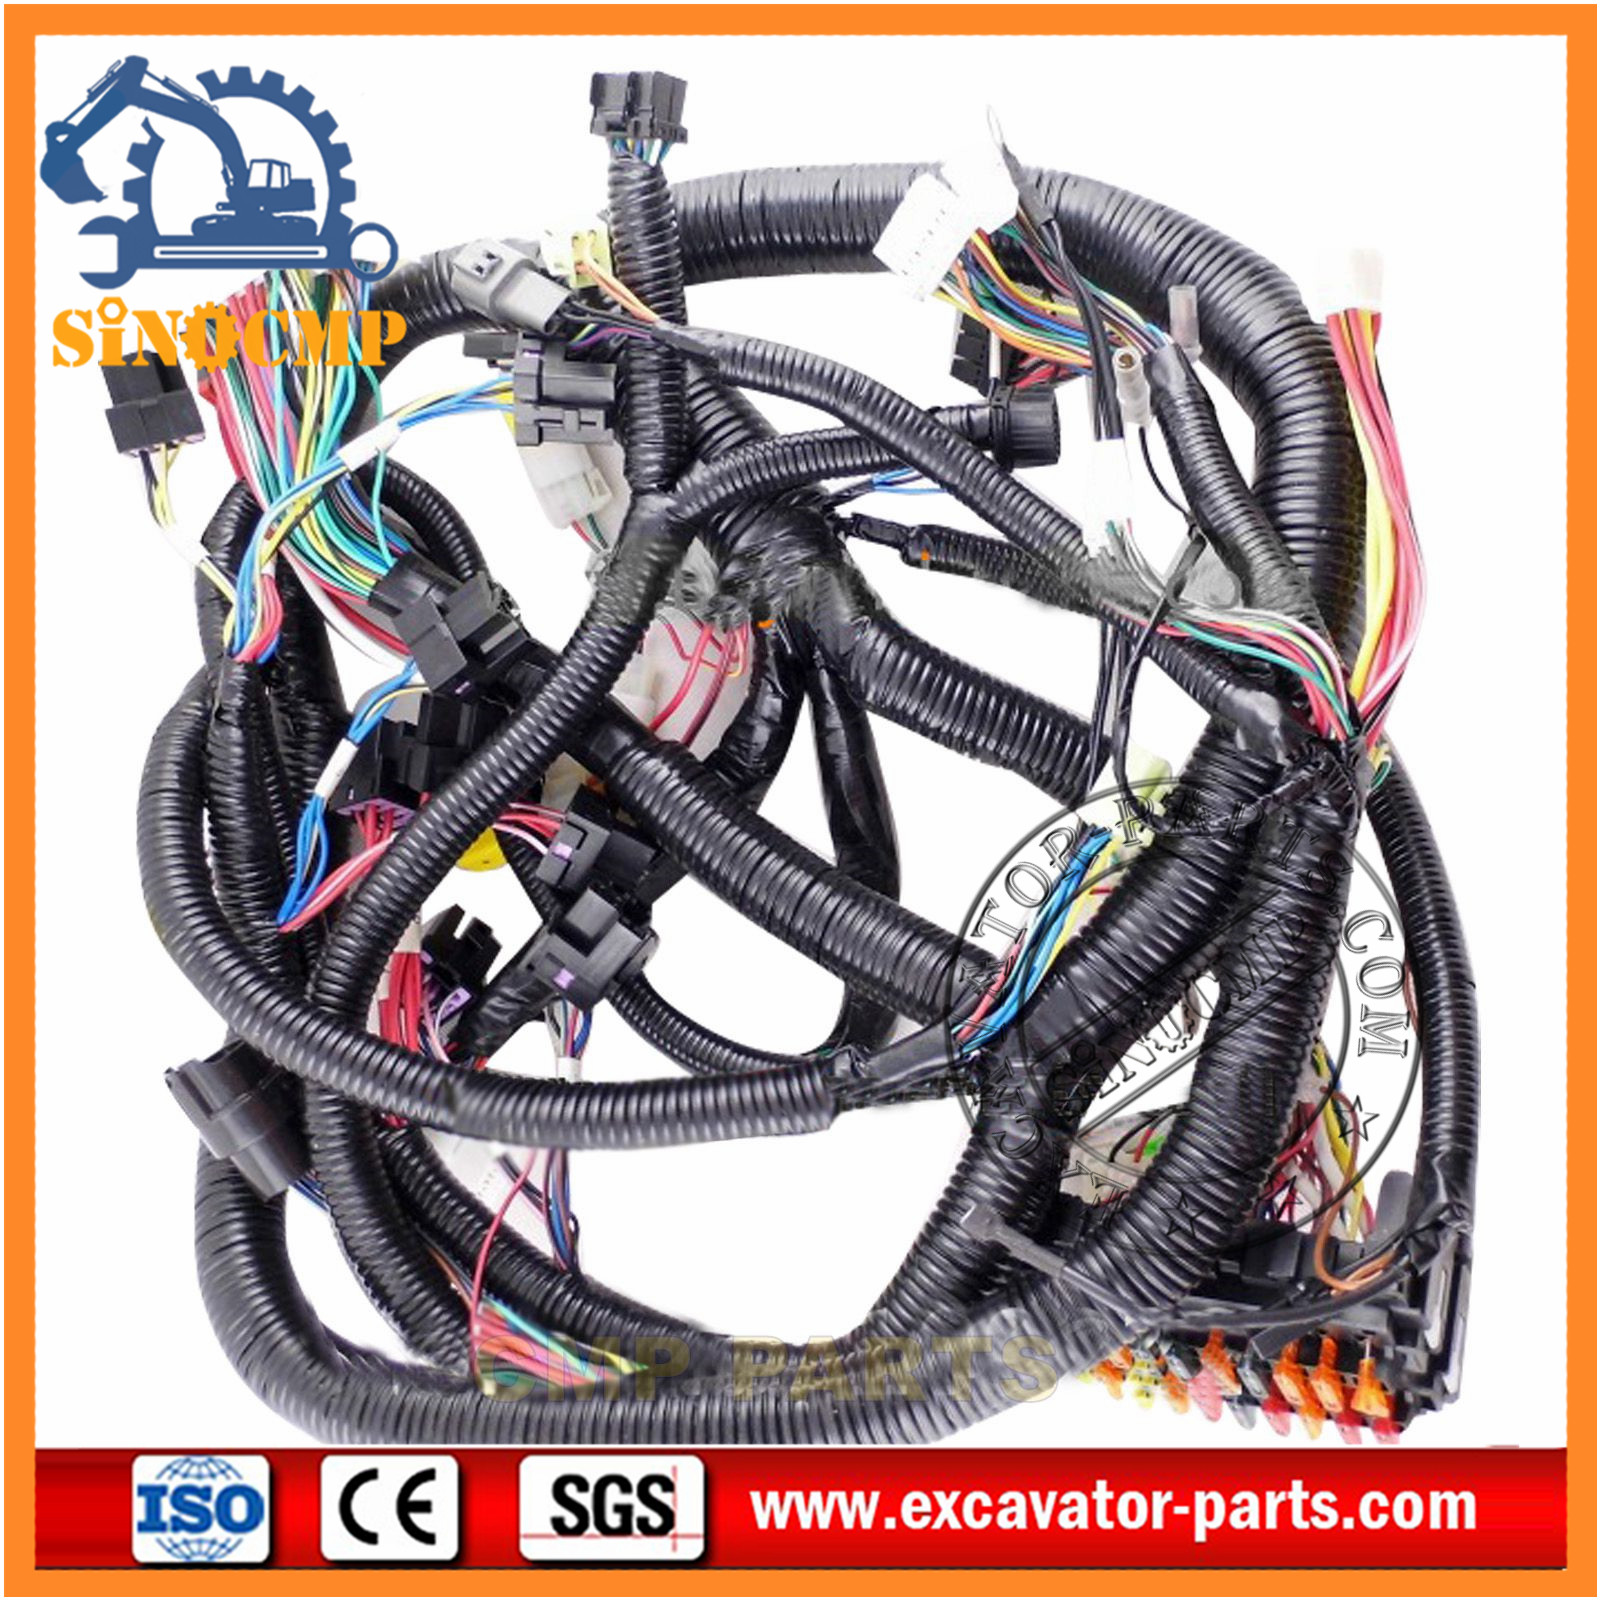 hight resolution of ex wiring harness wiring diagram for youex wiring harness wiring diagram query 94 civic ex wiring